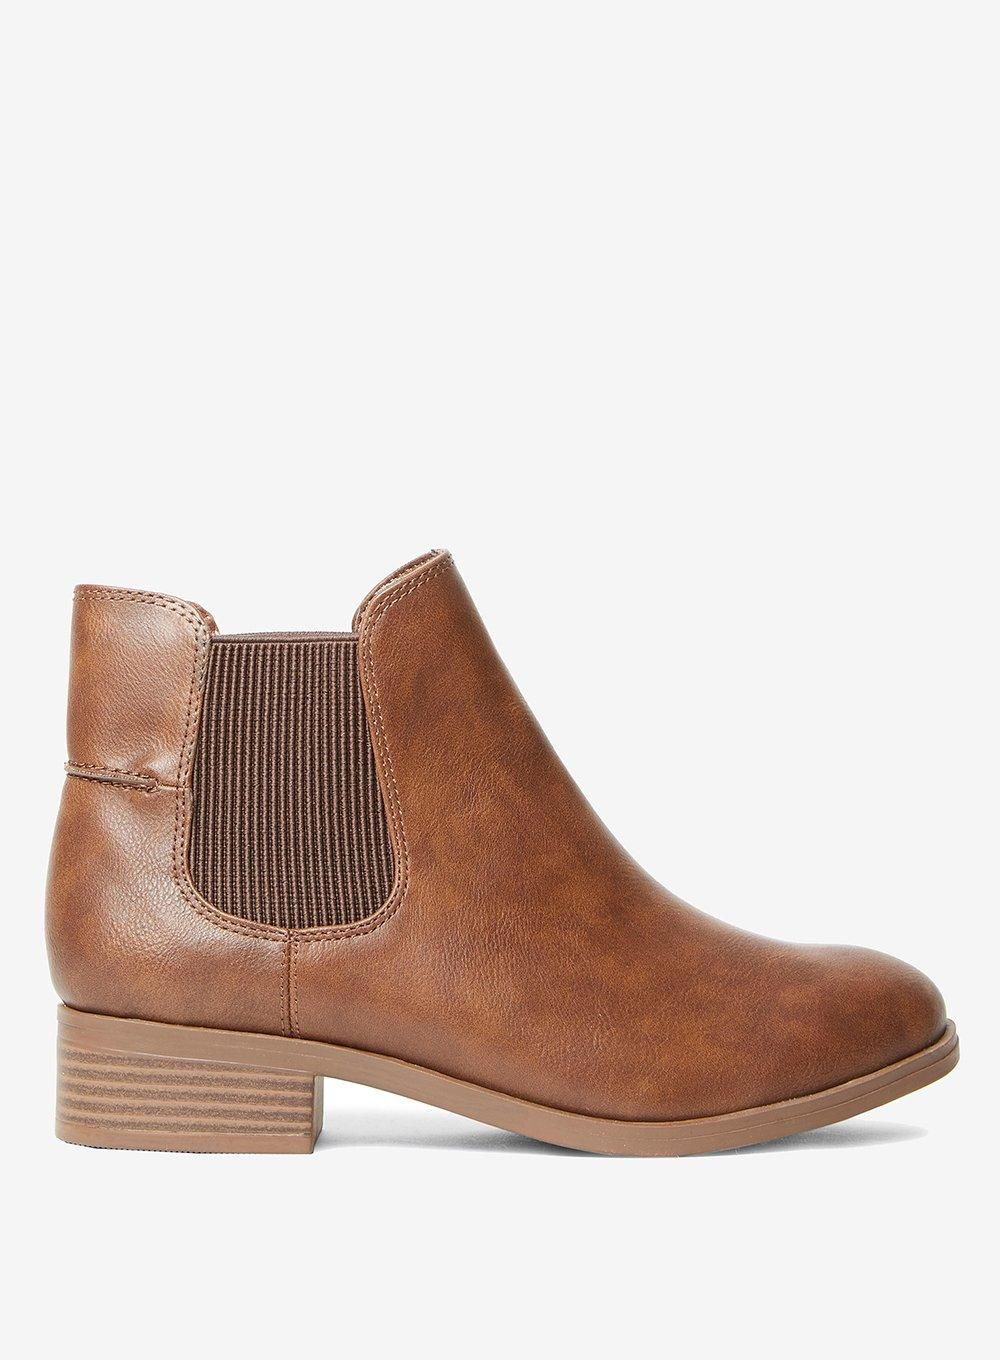 Wide Fit Tan 'Monty' Ankle Boots in